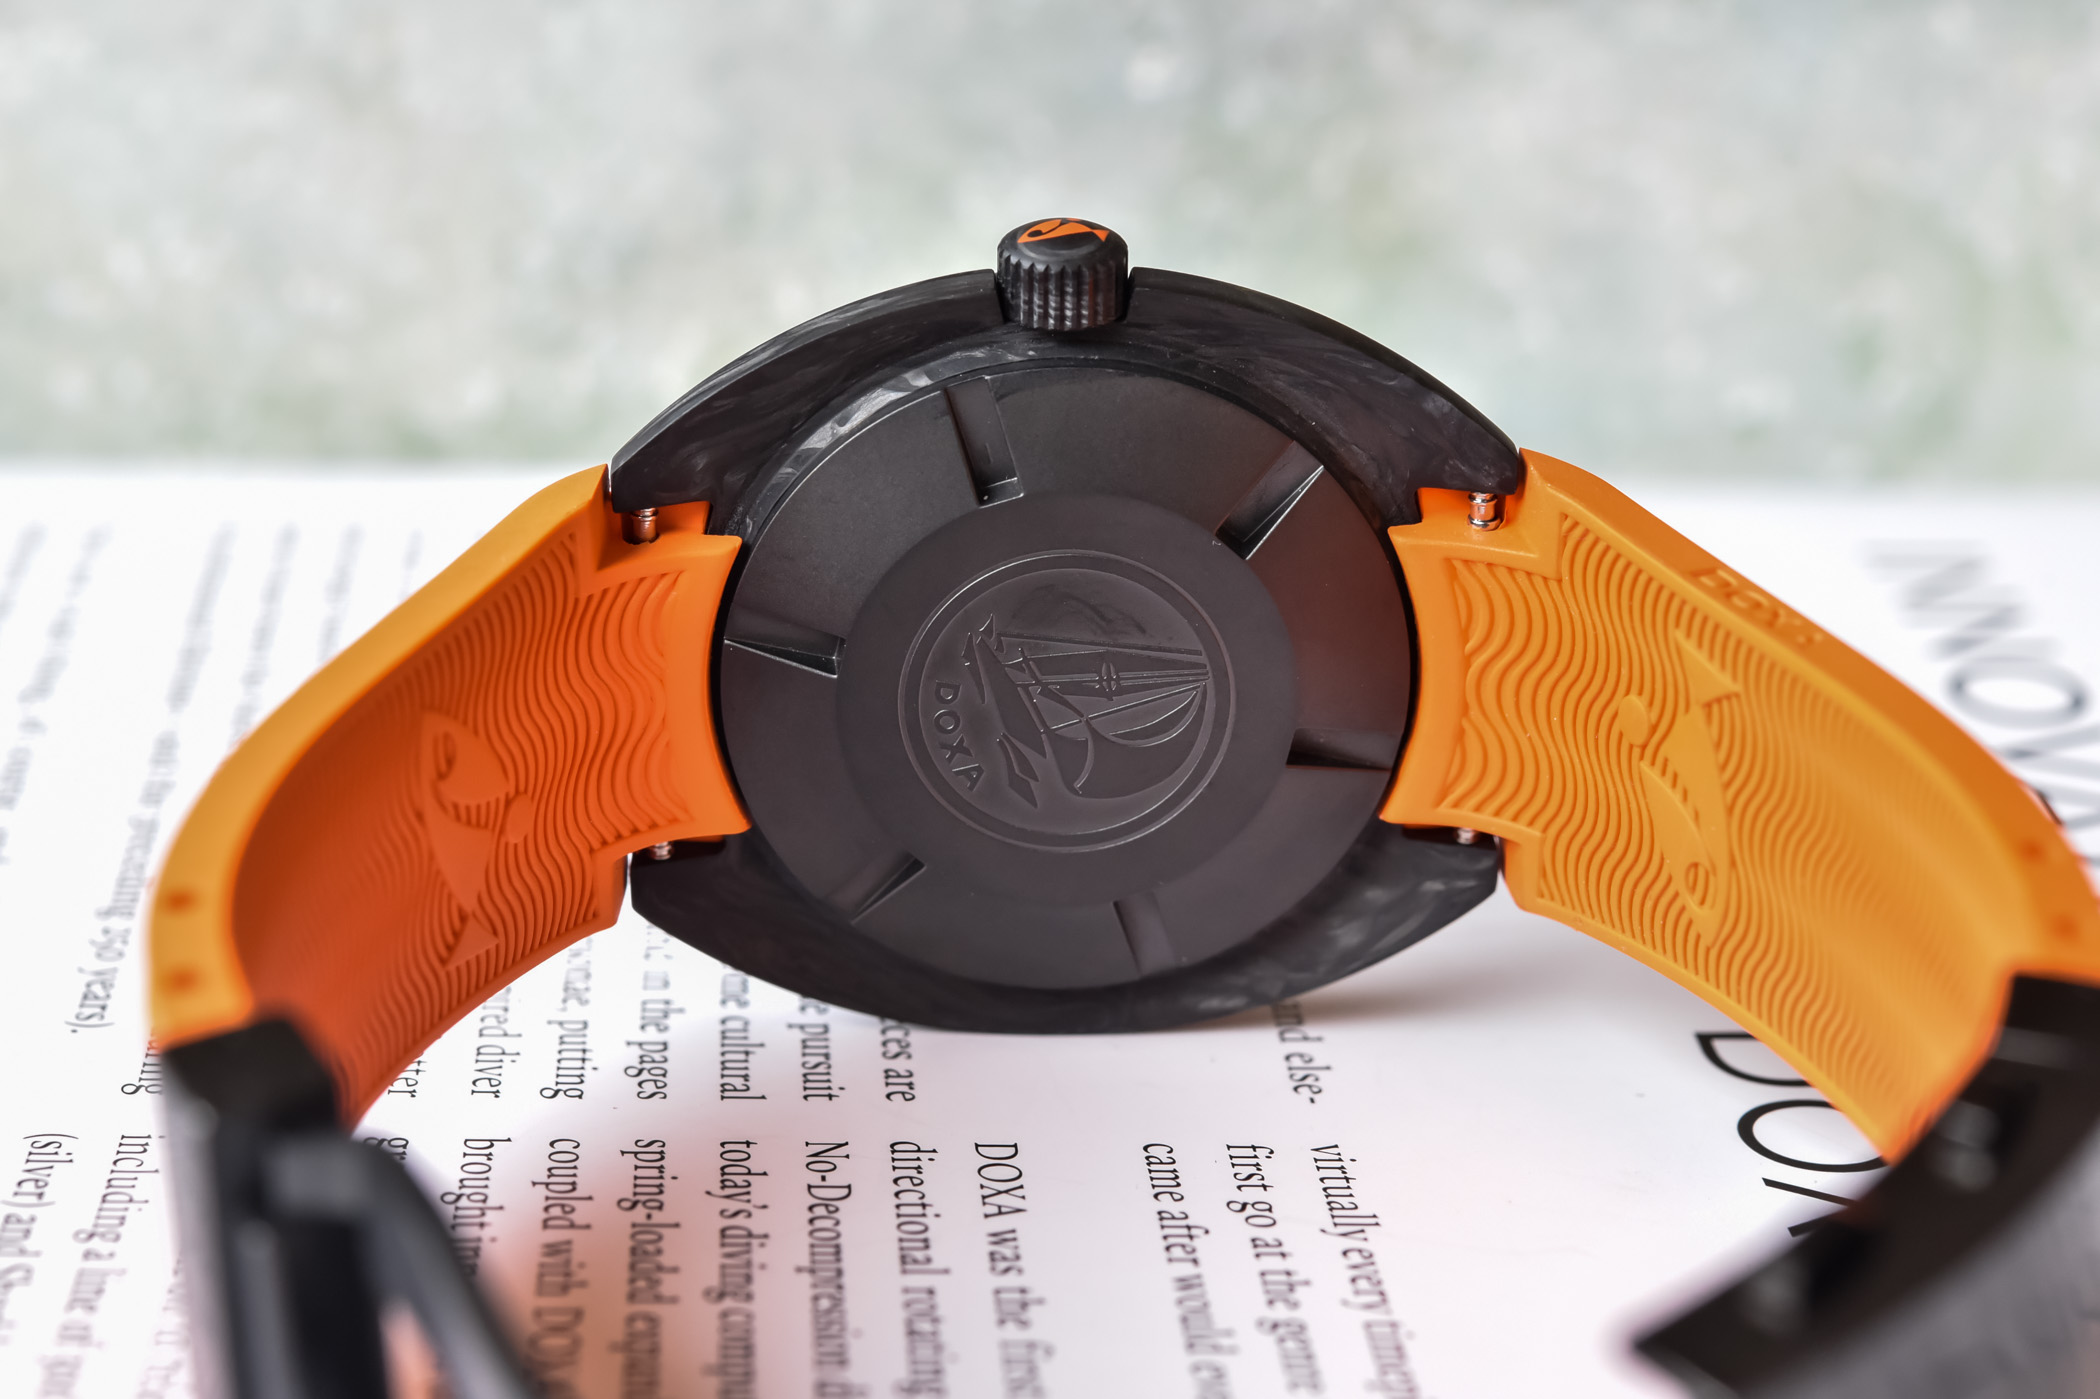 Doxa-SUB-300-Carbon-COSC-Collection-2021-review-2.jpg